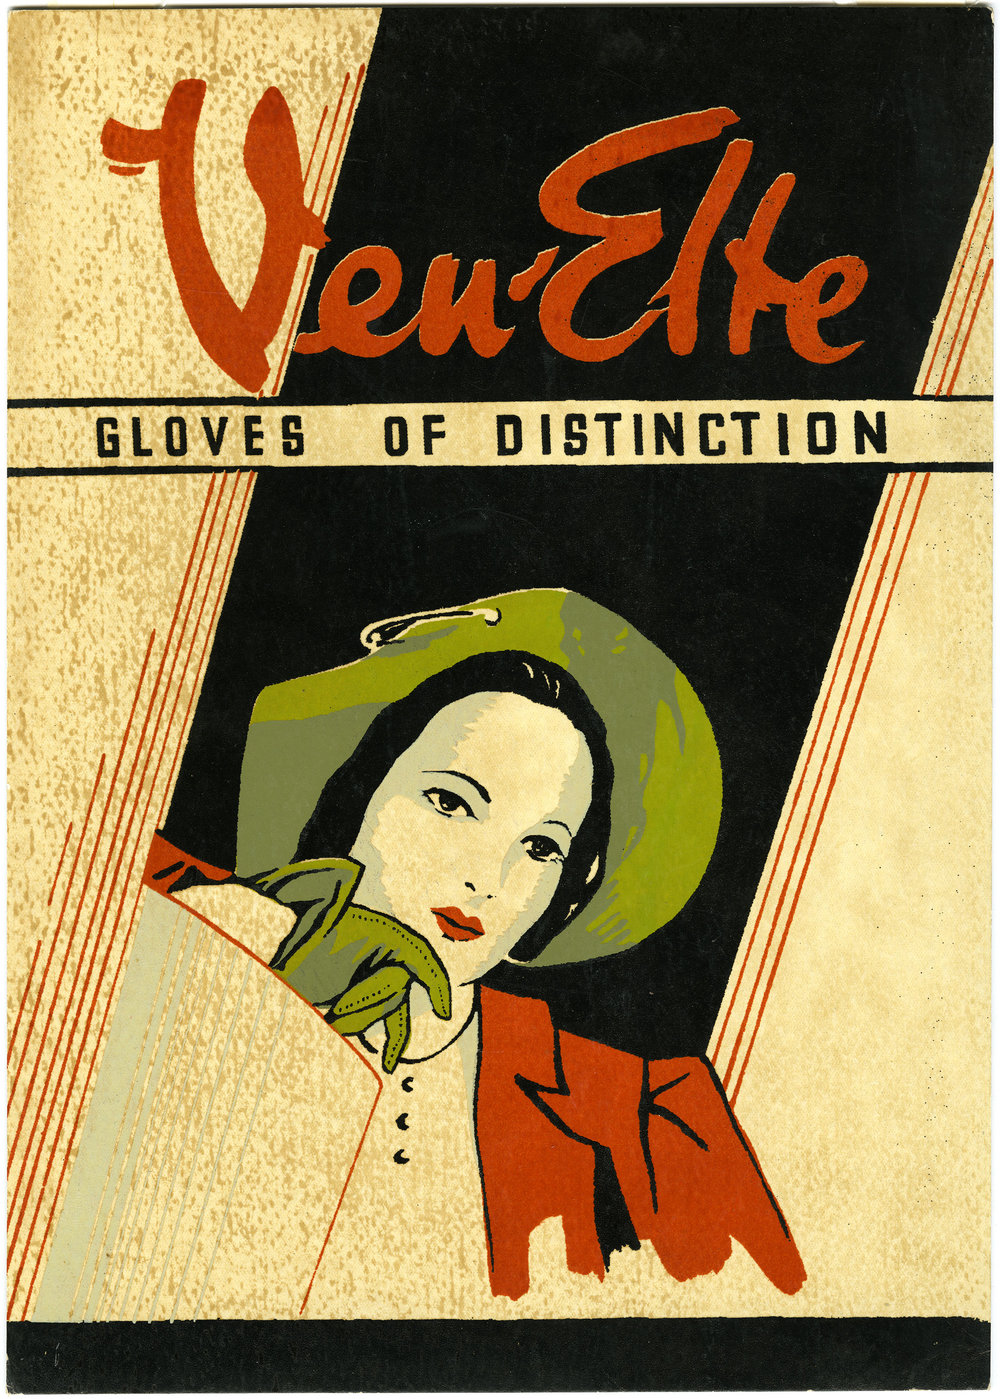 Abikhair---advert-Vue-Elte-gloves-of-distinction---ARM-01.jpg